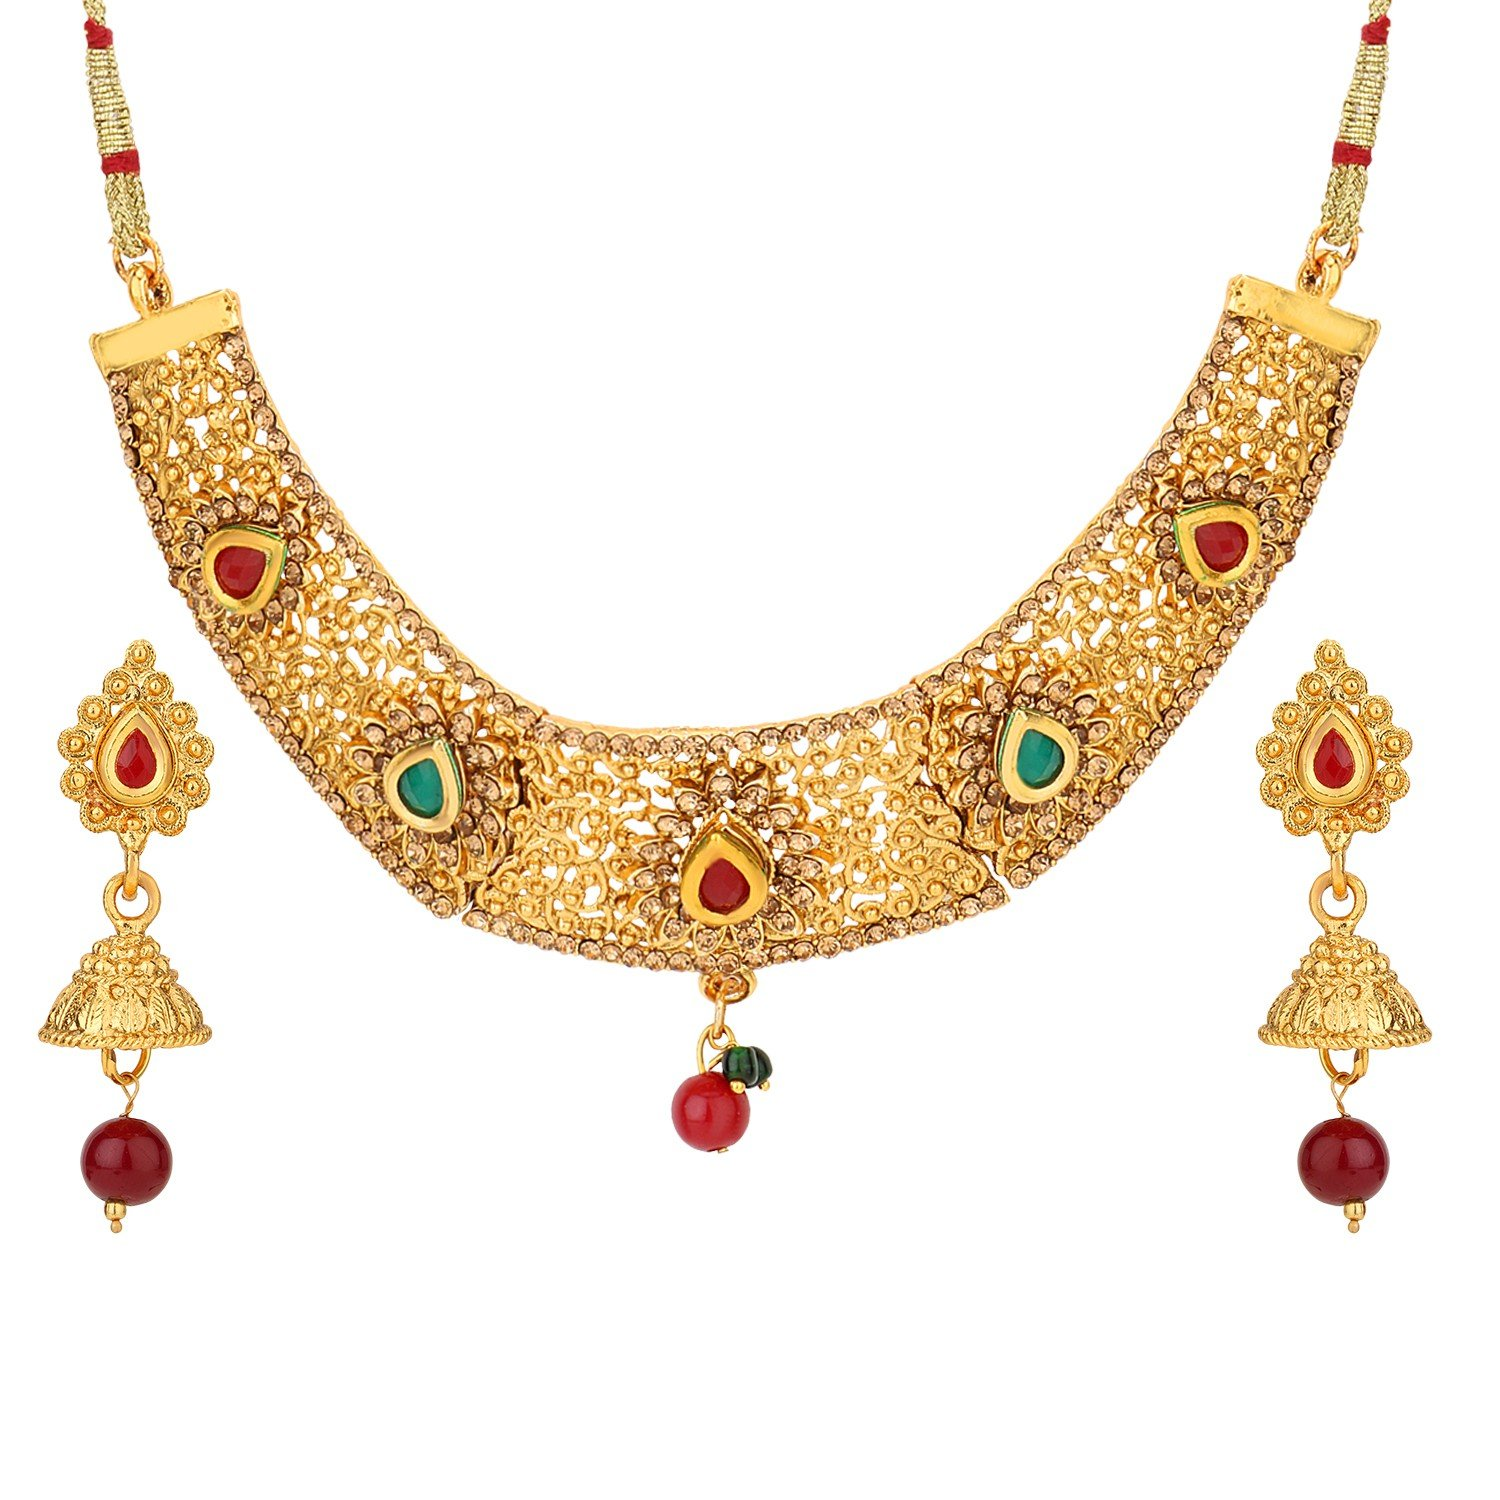 Efulgenz Indian Bollywood Traditional Red Green Rhinestone Faux Ruby Emerald Heavy Bridal Designer Jewelry Choker Necklace Set for Women and Girls Jaipur Art Jewellery MNT269